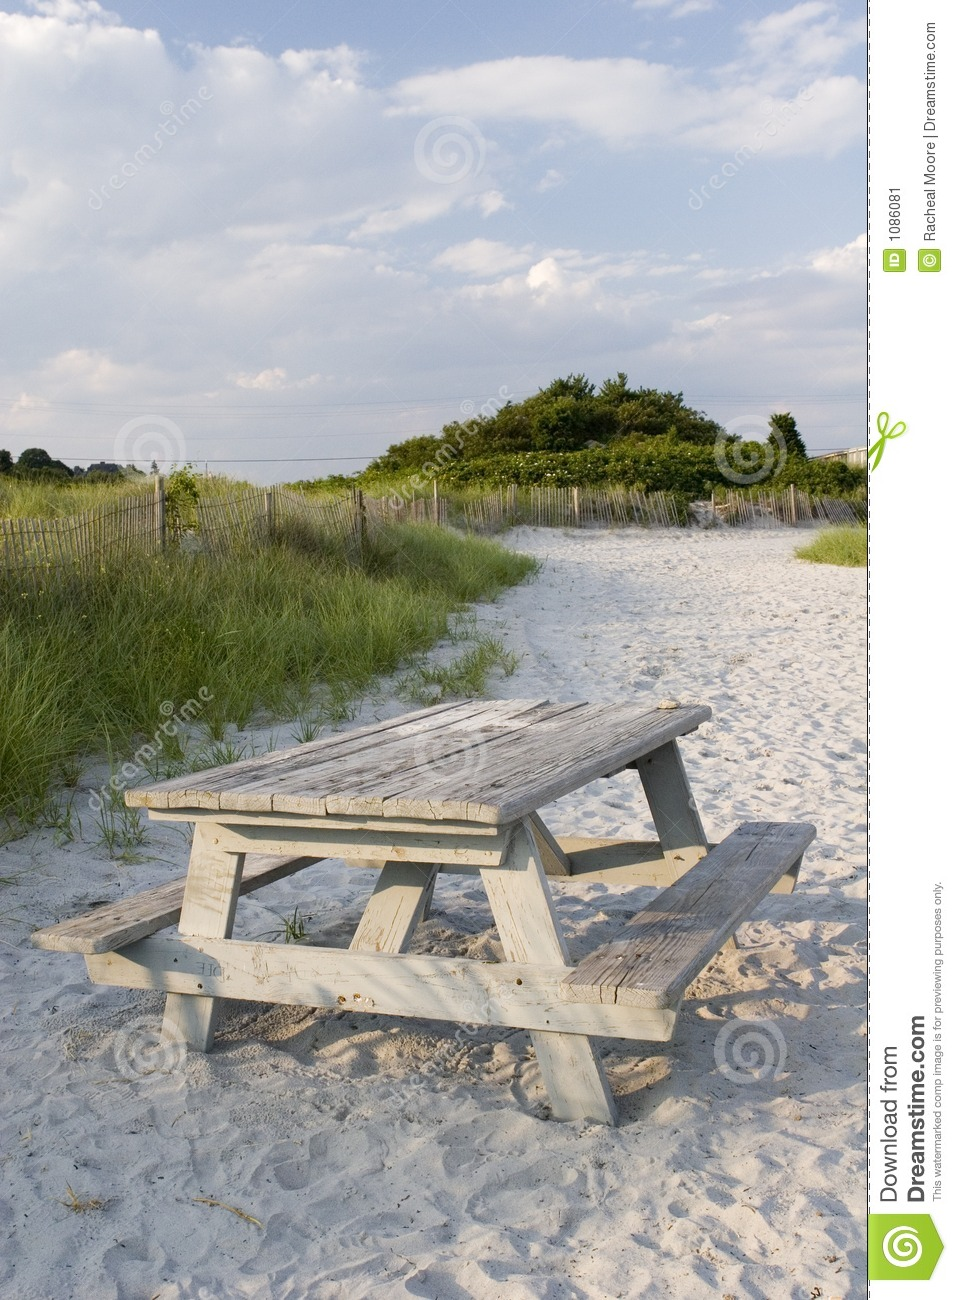 Beach Picnic Table Stock Image - Image: 1086081